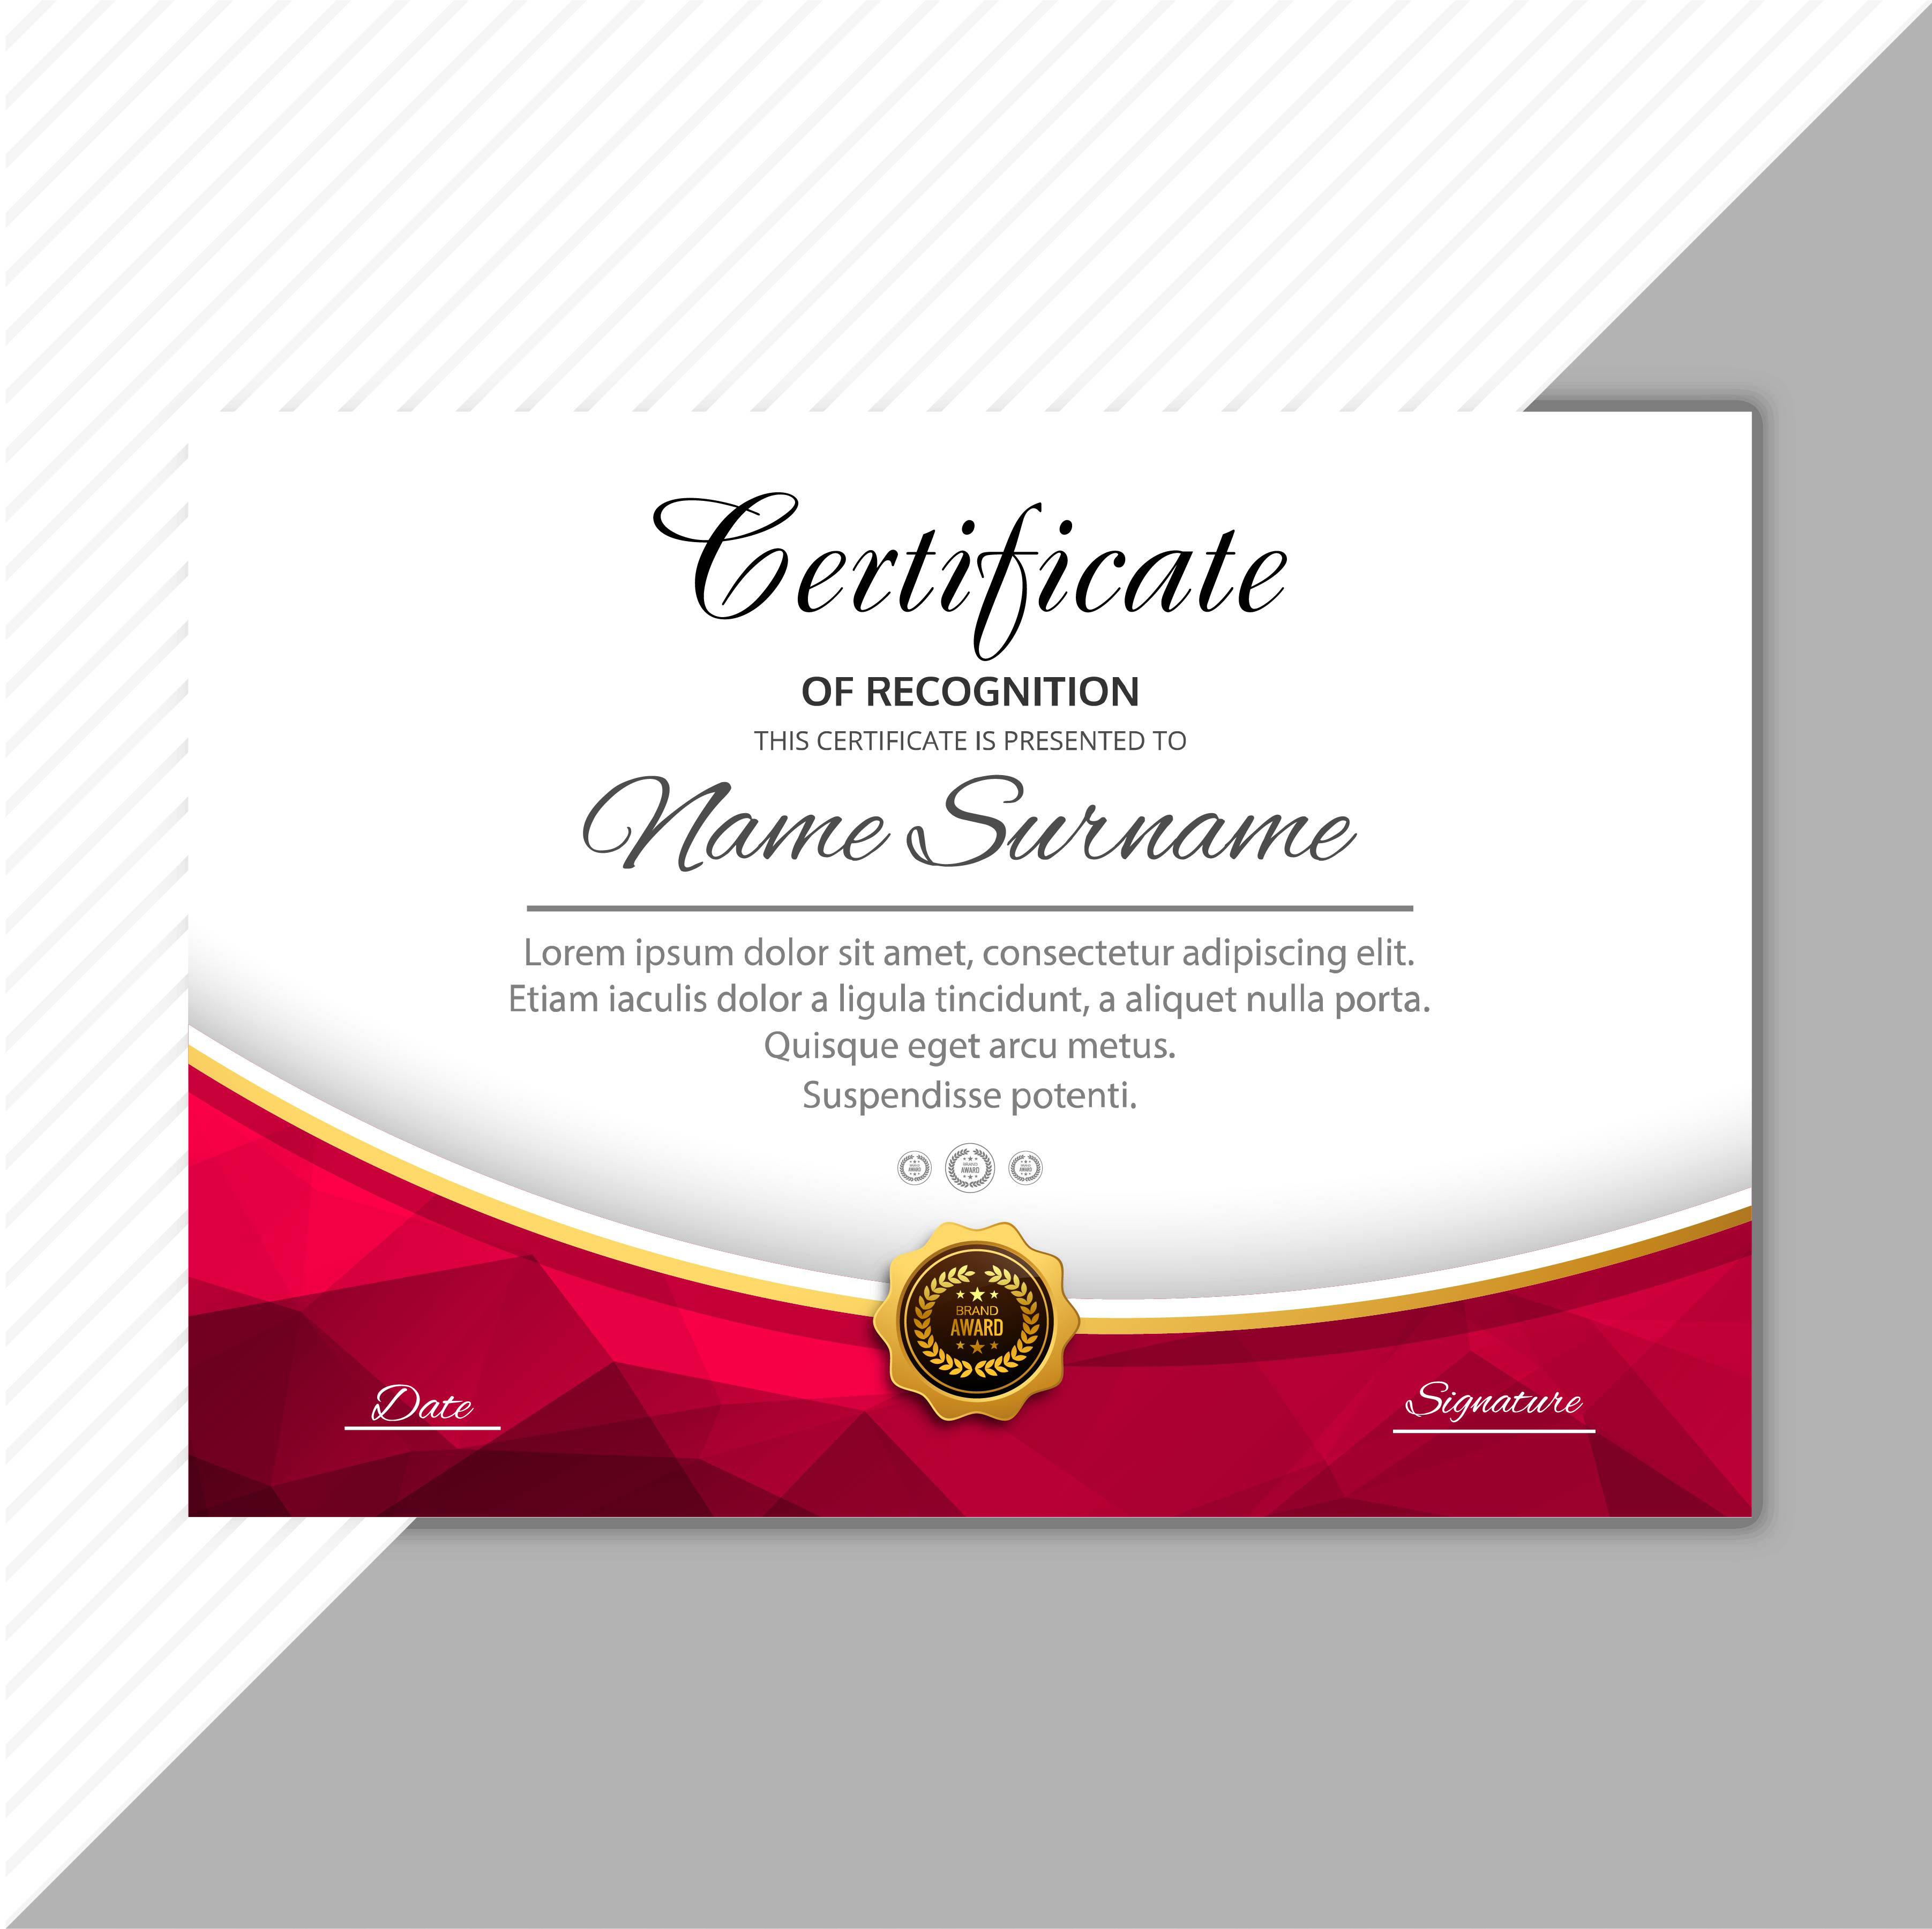 Abstract Stylish Certificate Diploma Template Background Download